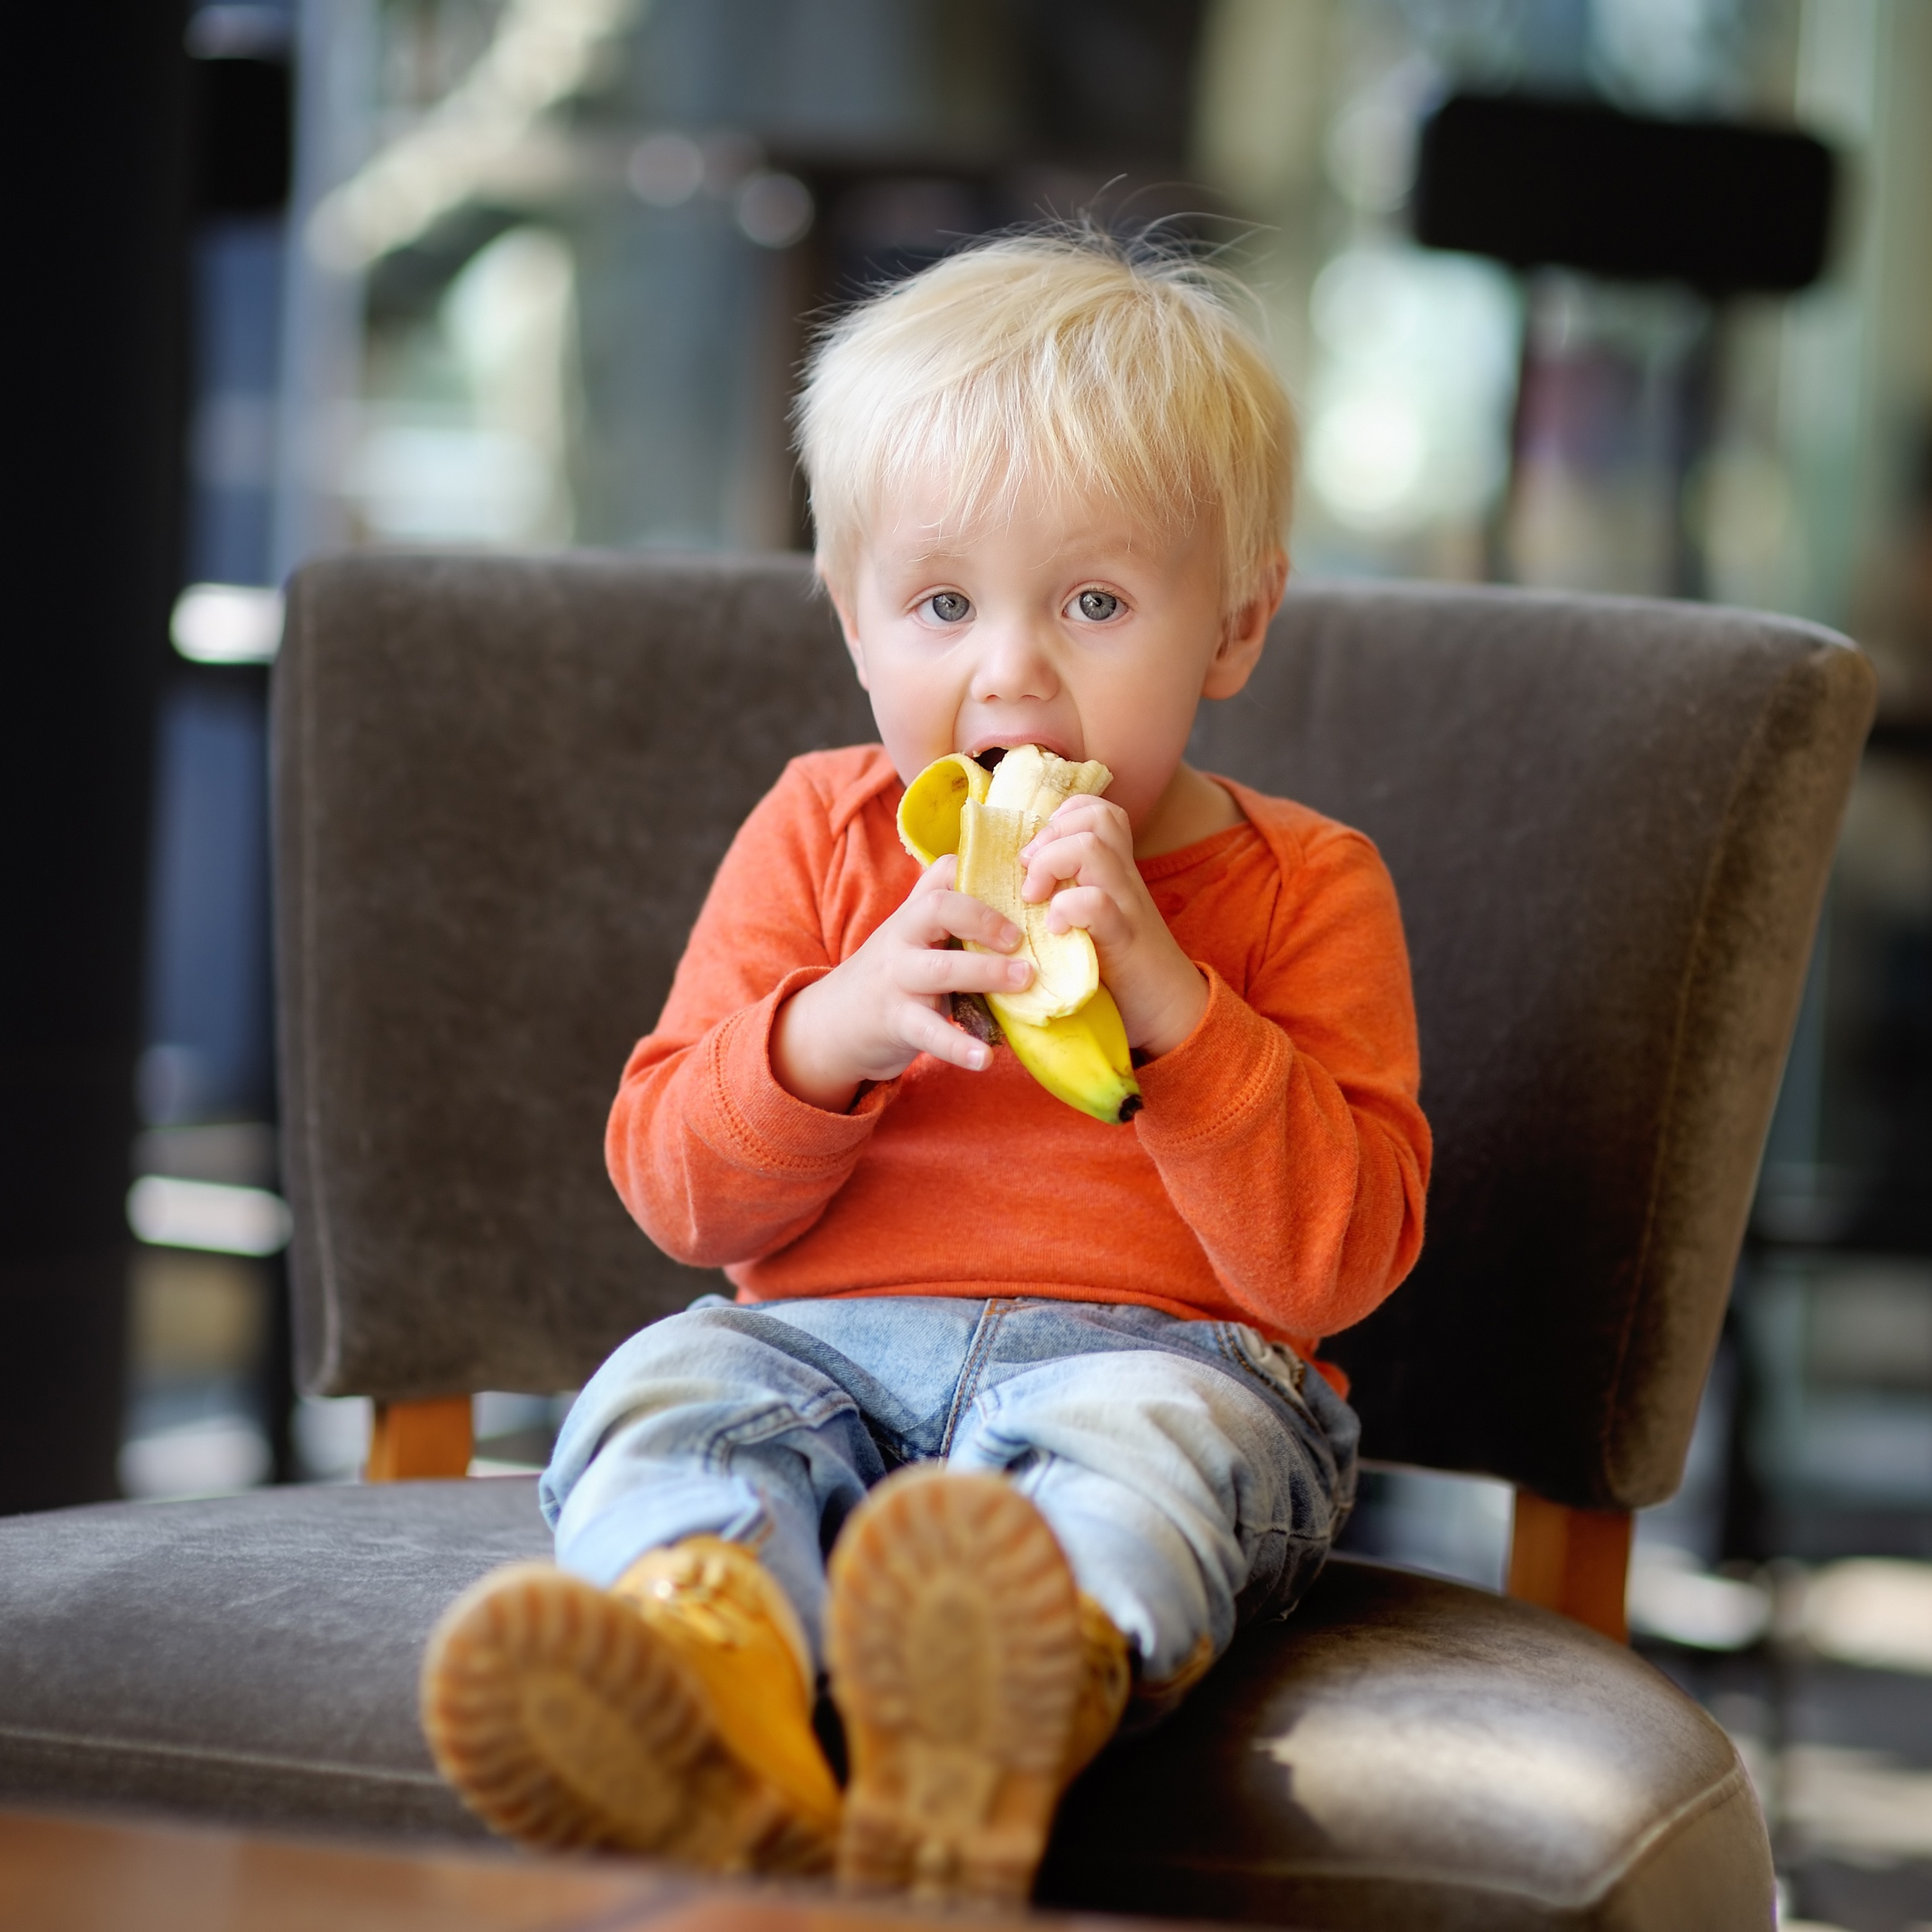 Toddler-boy-eating-banana-508039050_2500x2500.jpeg